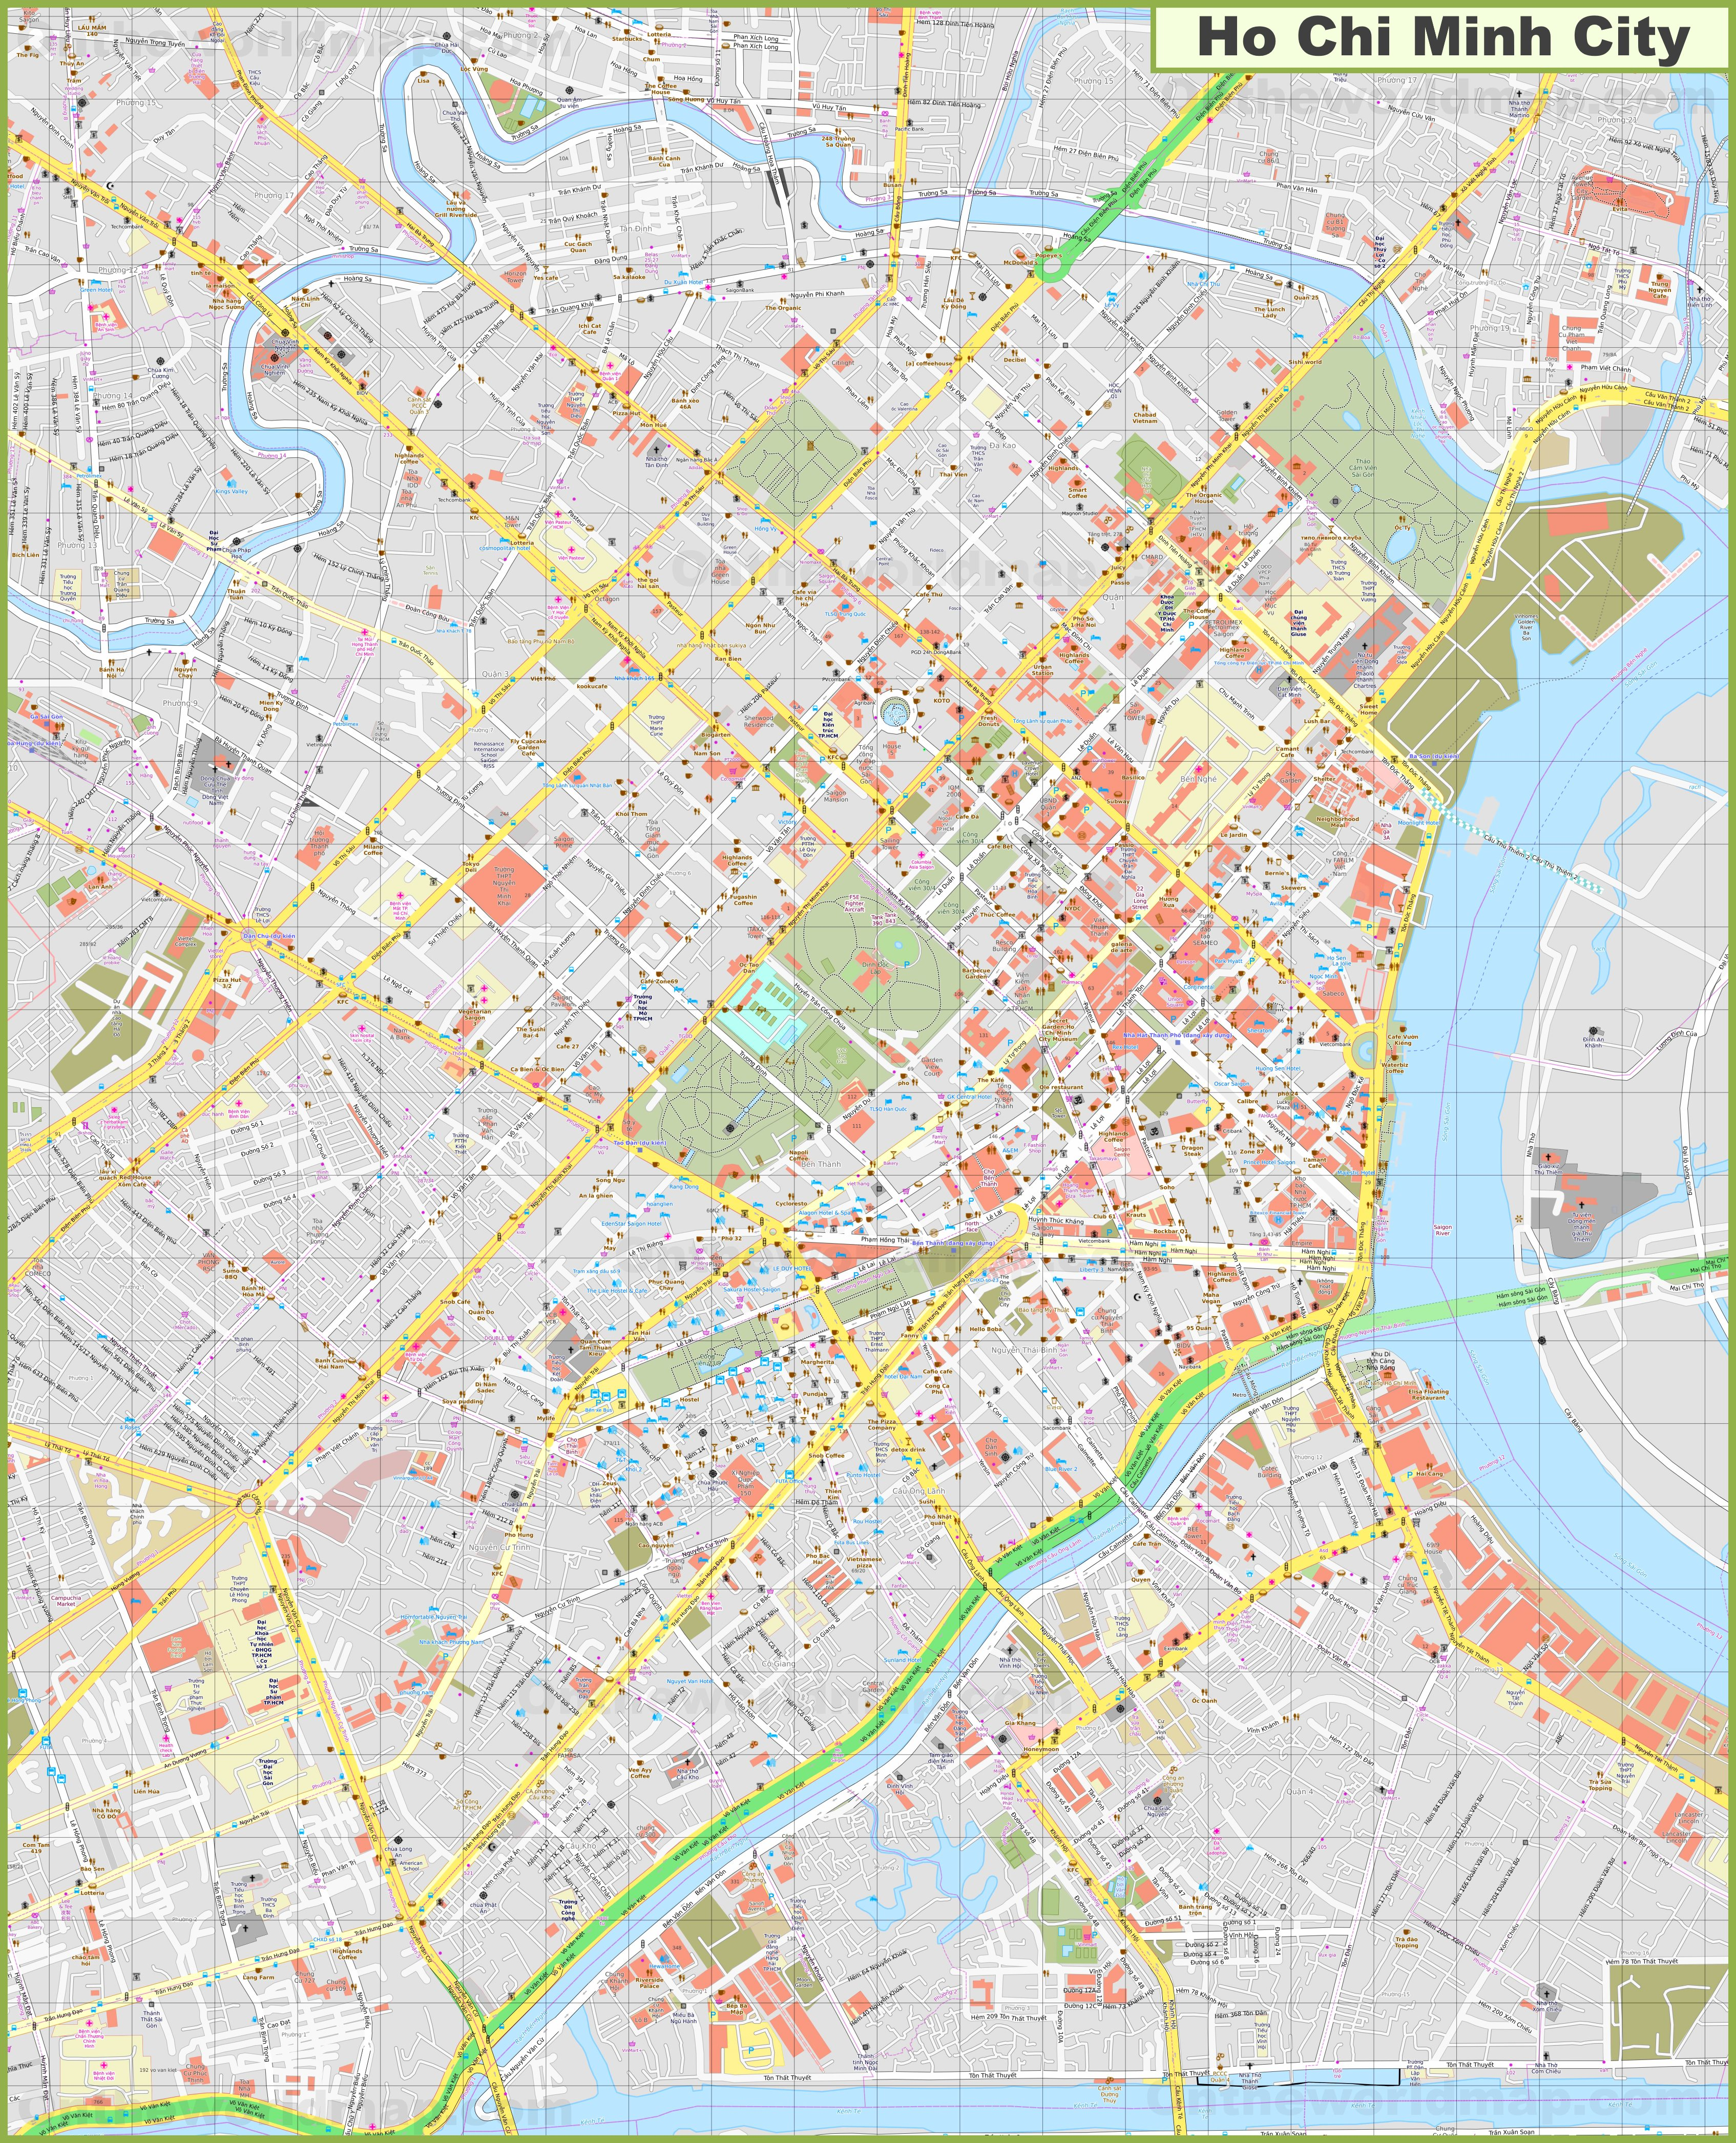 Ho Chi Minh Vietnam Map.Large Detailed Map Of Ho Chi Minh City